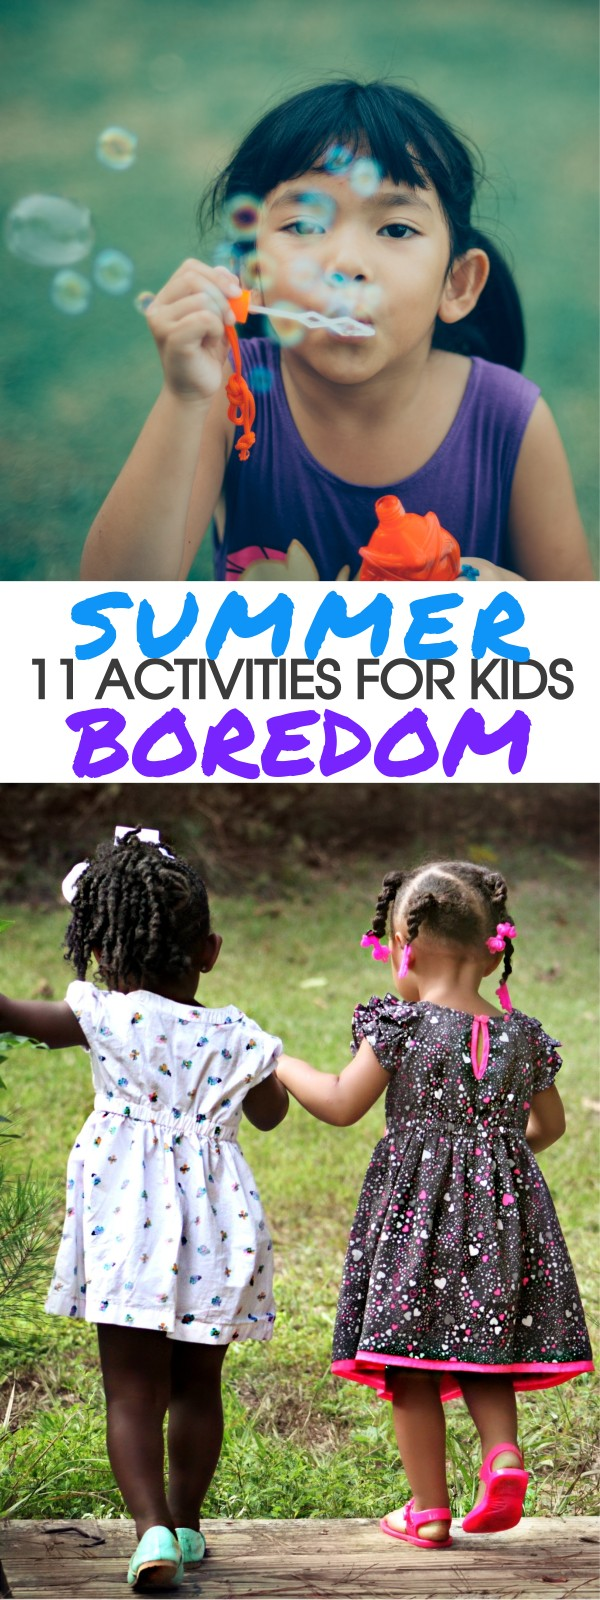 11 Fun Summer Boredom Busters and Brain Teasers for Kids - Theyll LOVE This